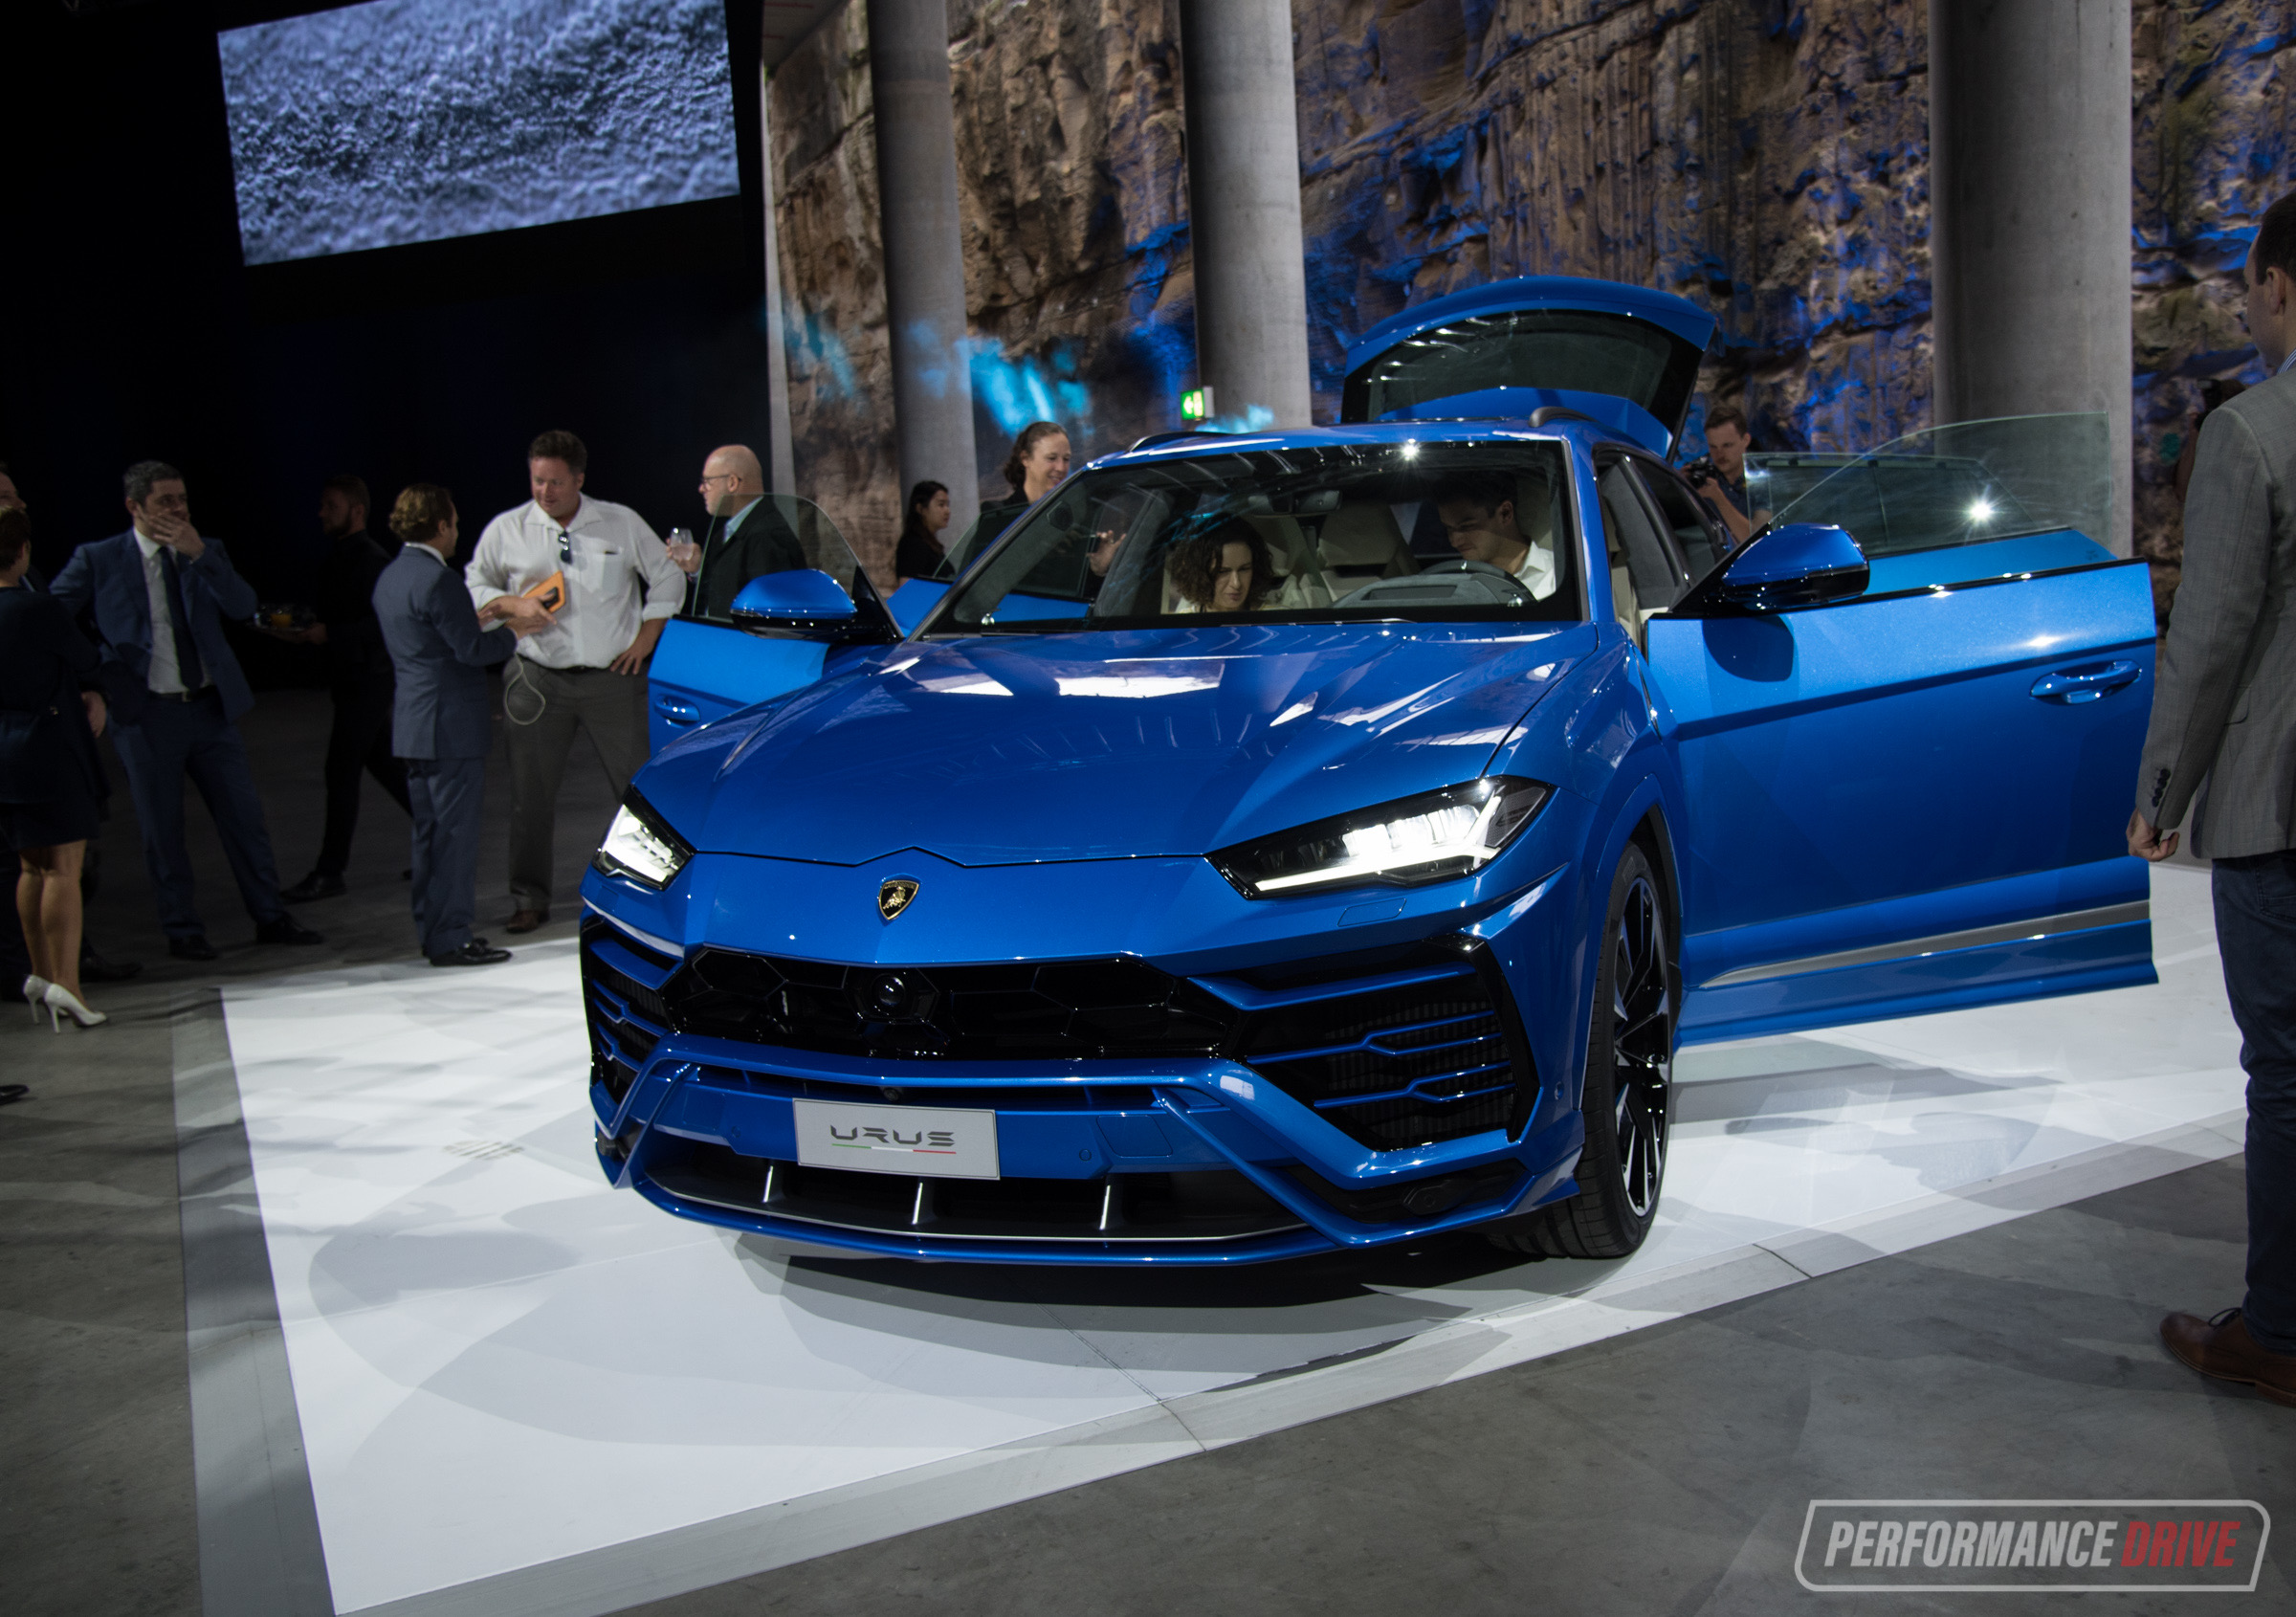 Lamborghini Urus Makes Australian Debut In Sydney